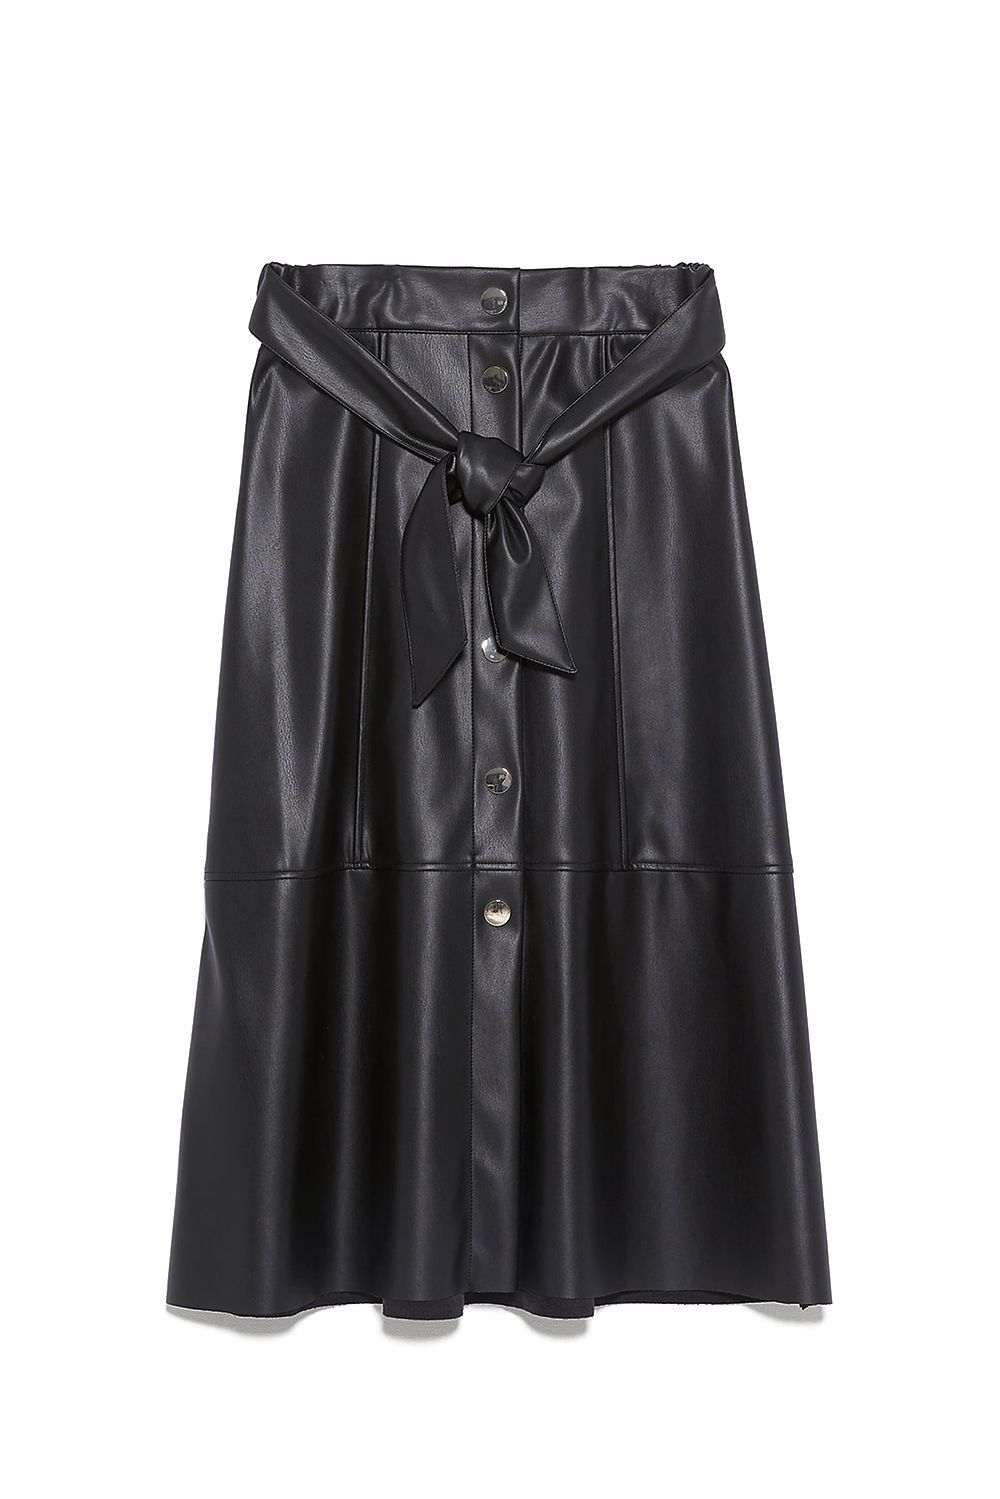 A Black Faux Leather Skirt Zara zara.com $39.90 SHOP IT On a scale of one to 10, 10 being I need this skirt, I'm a nine. (The only reason I'm not a full 10 is because I already have two leather skirts!)